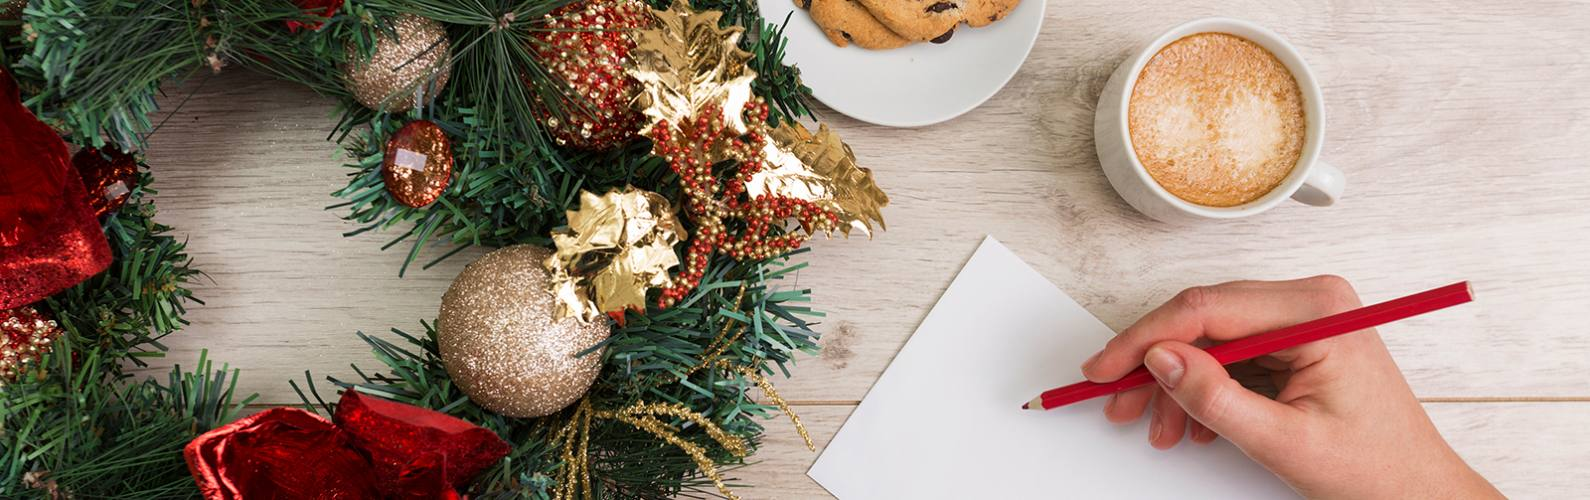 Get prepped for a relaxing Christmas, eco-style!